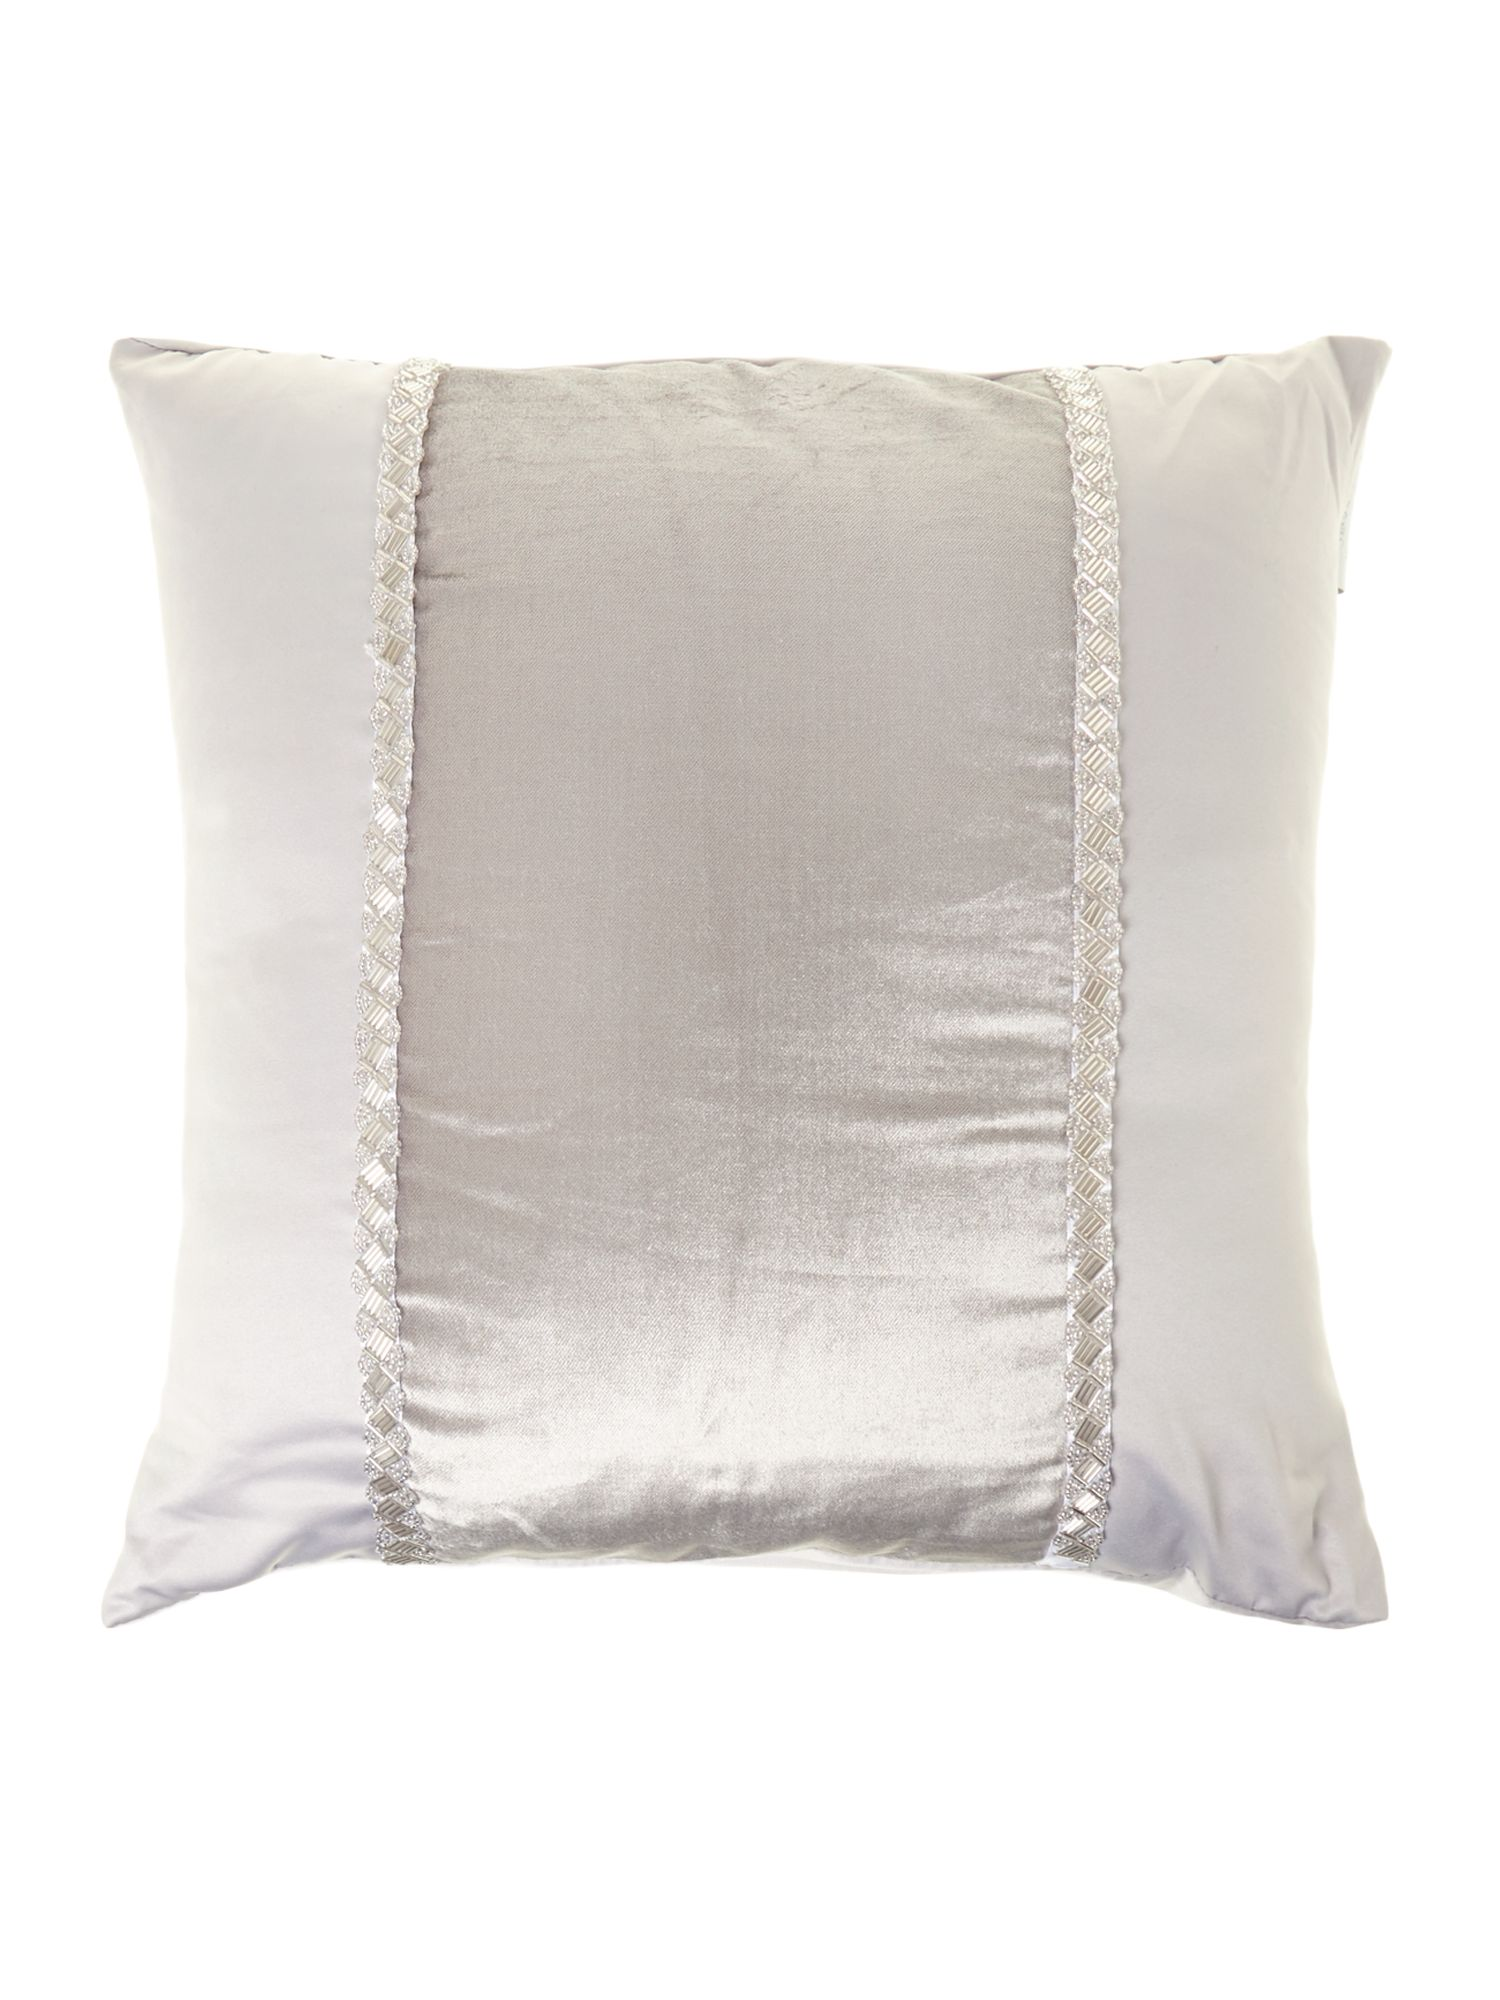 Pearl Pleat Paris cushion